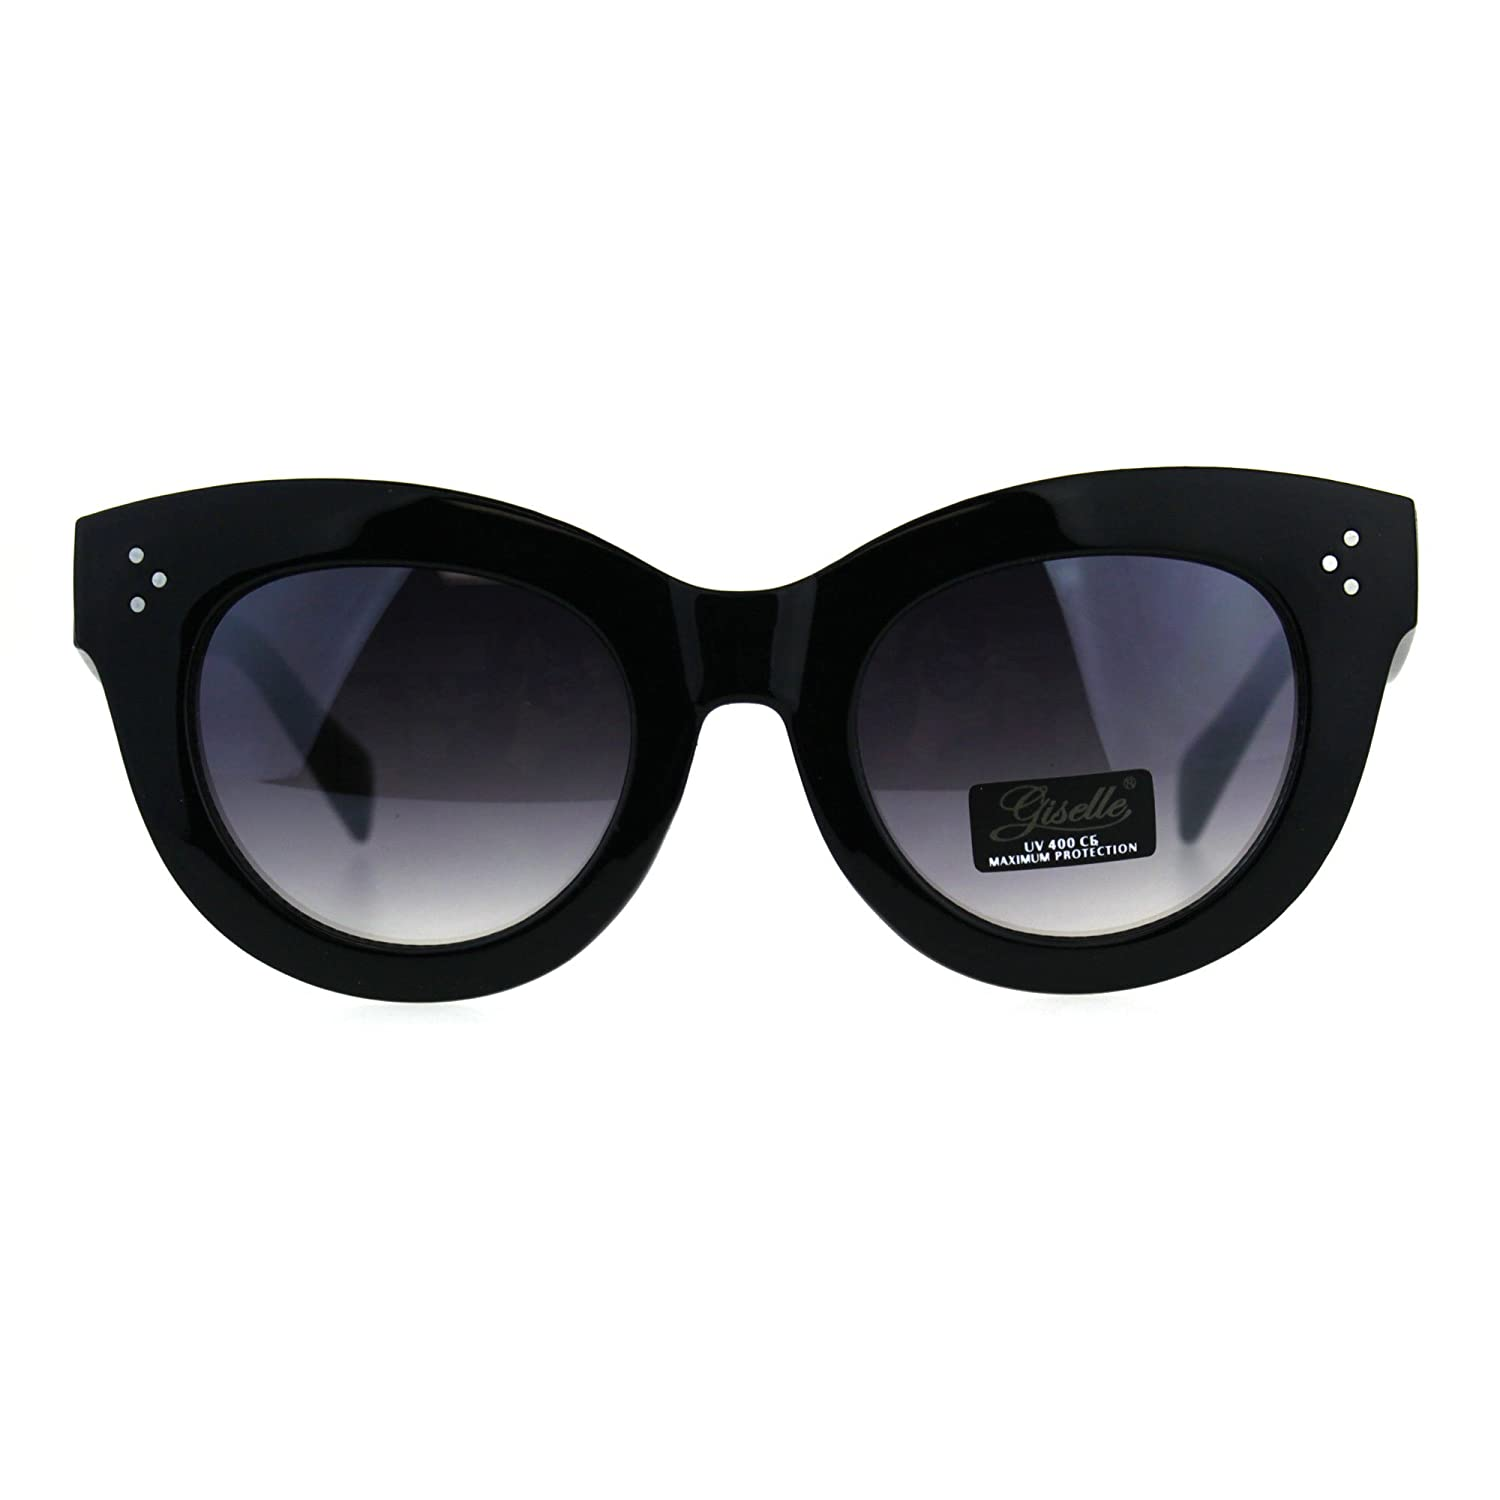 c52dbf095ad8 Amazon.com  Womens Thick Horn Rim Plastic Giselle Designer Sunglasses All  Black  Clothing